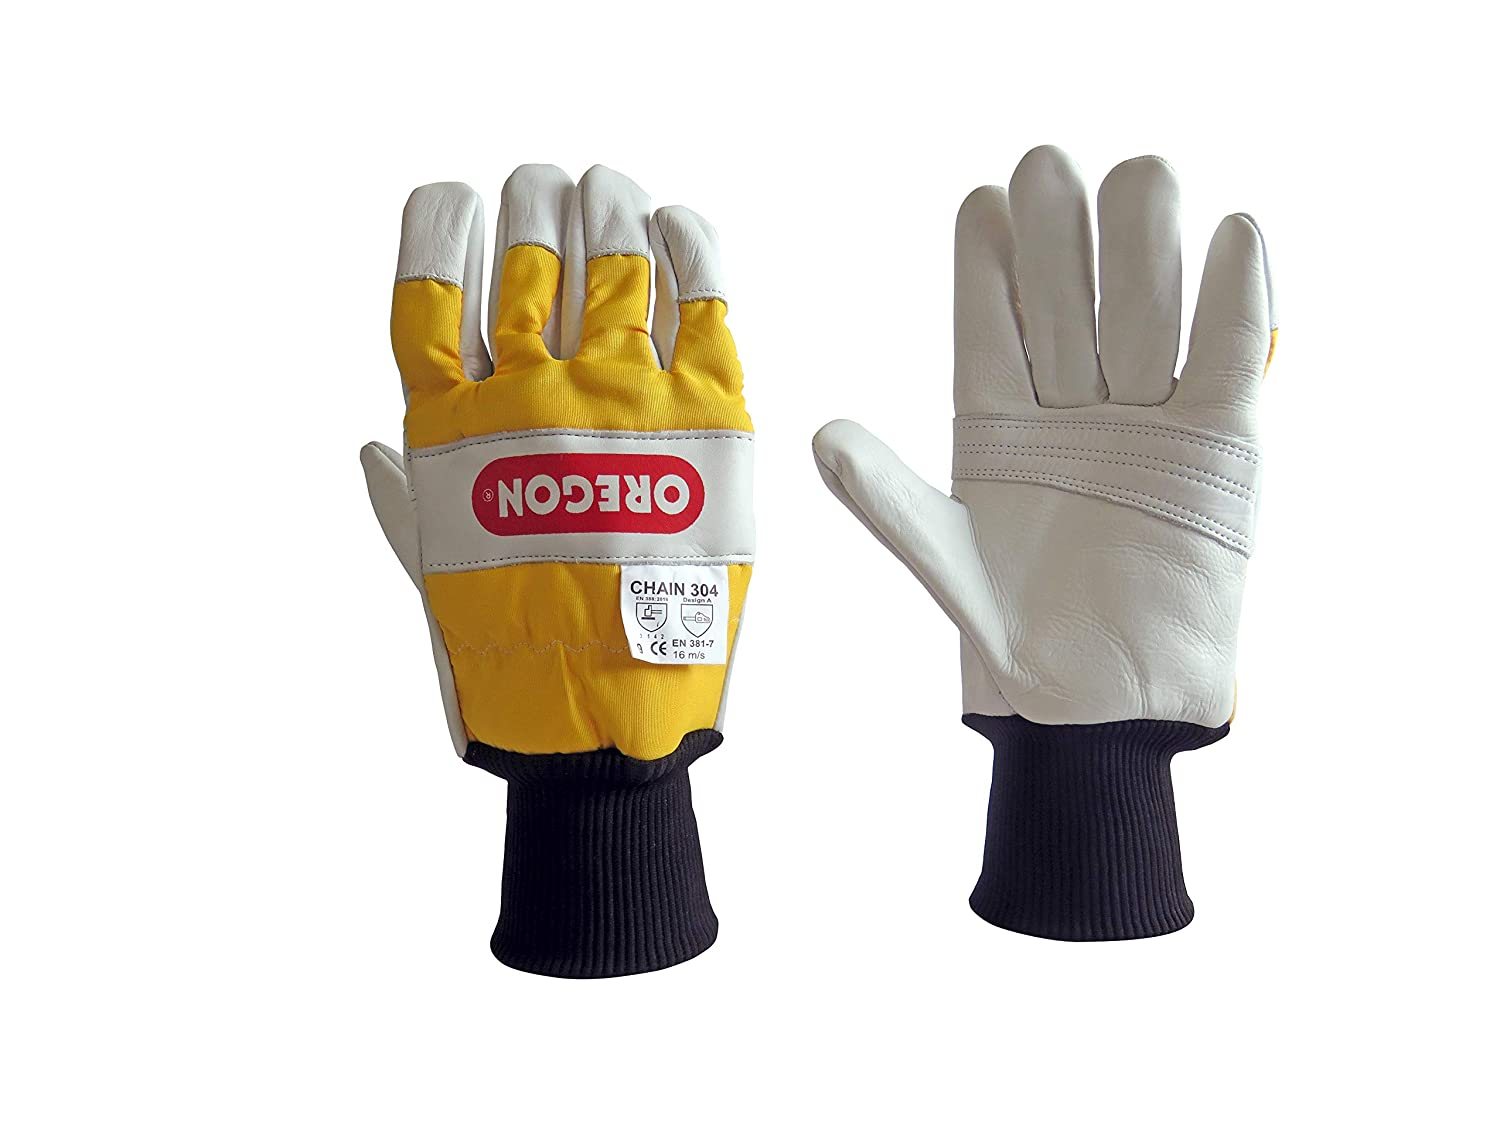 Oregon 295399M Chainsaw Protective Gloves